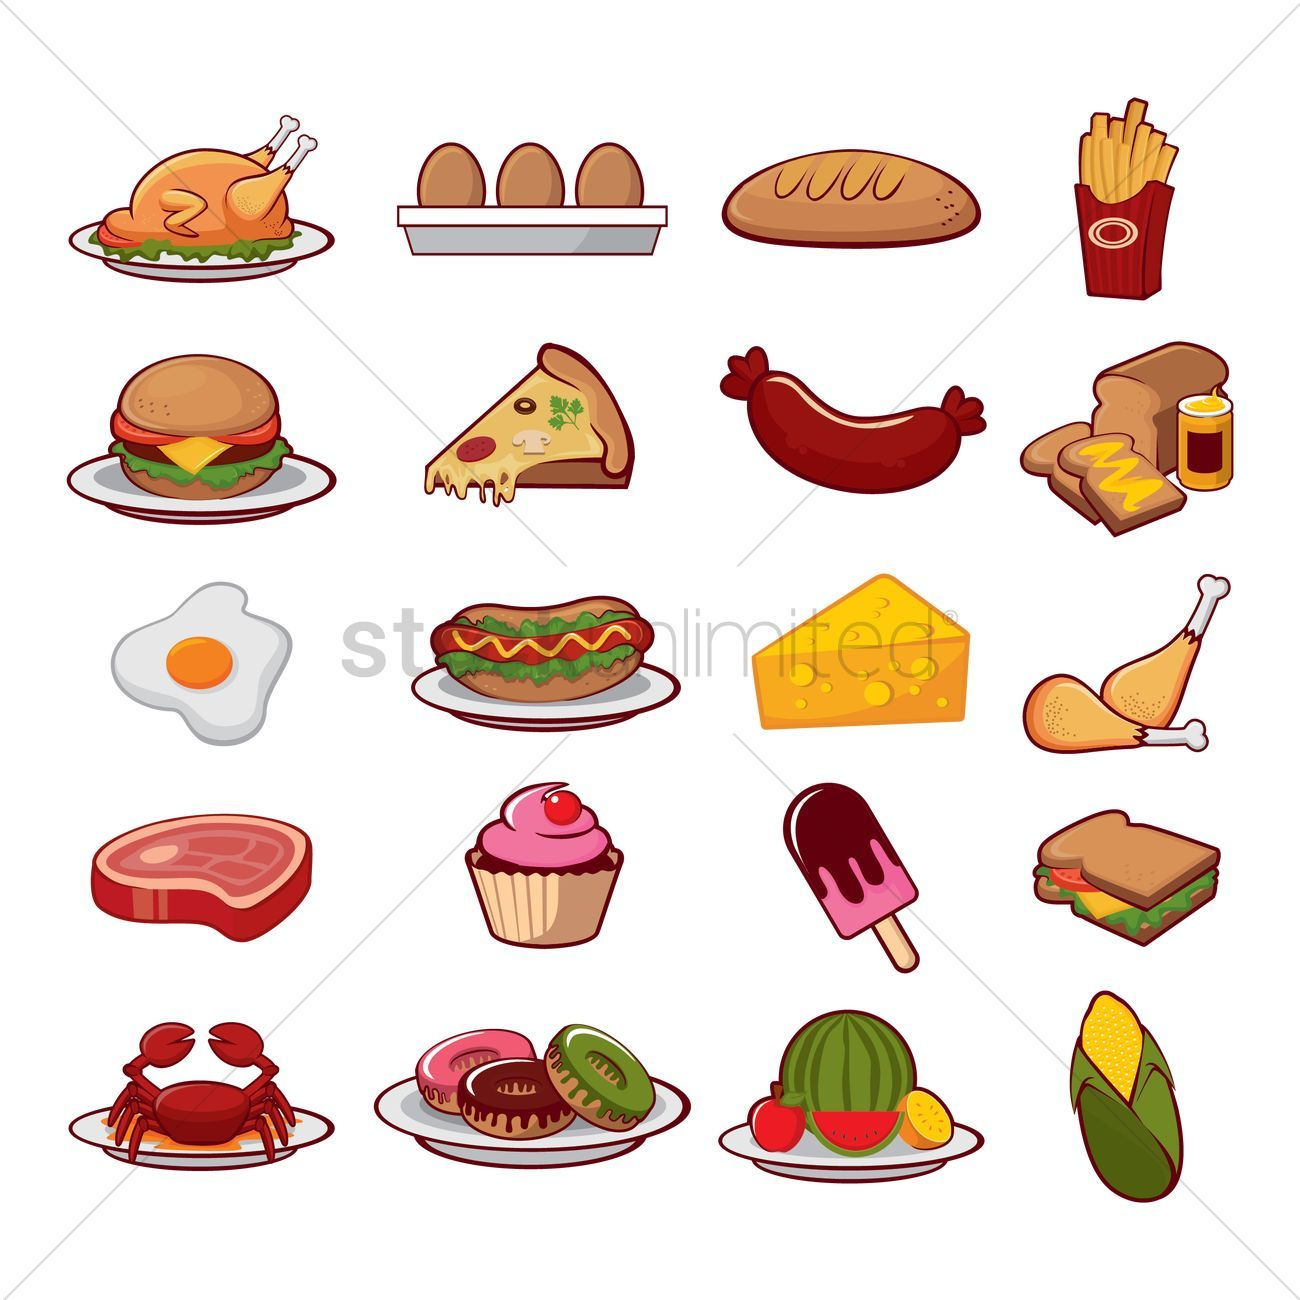 Food icon collection vector illustration